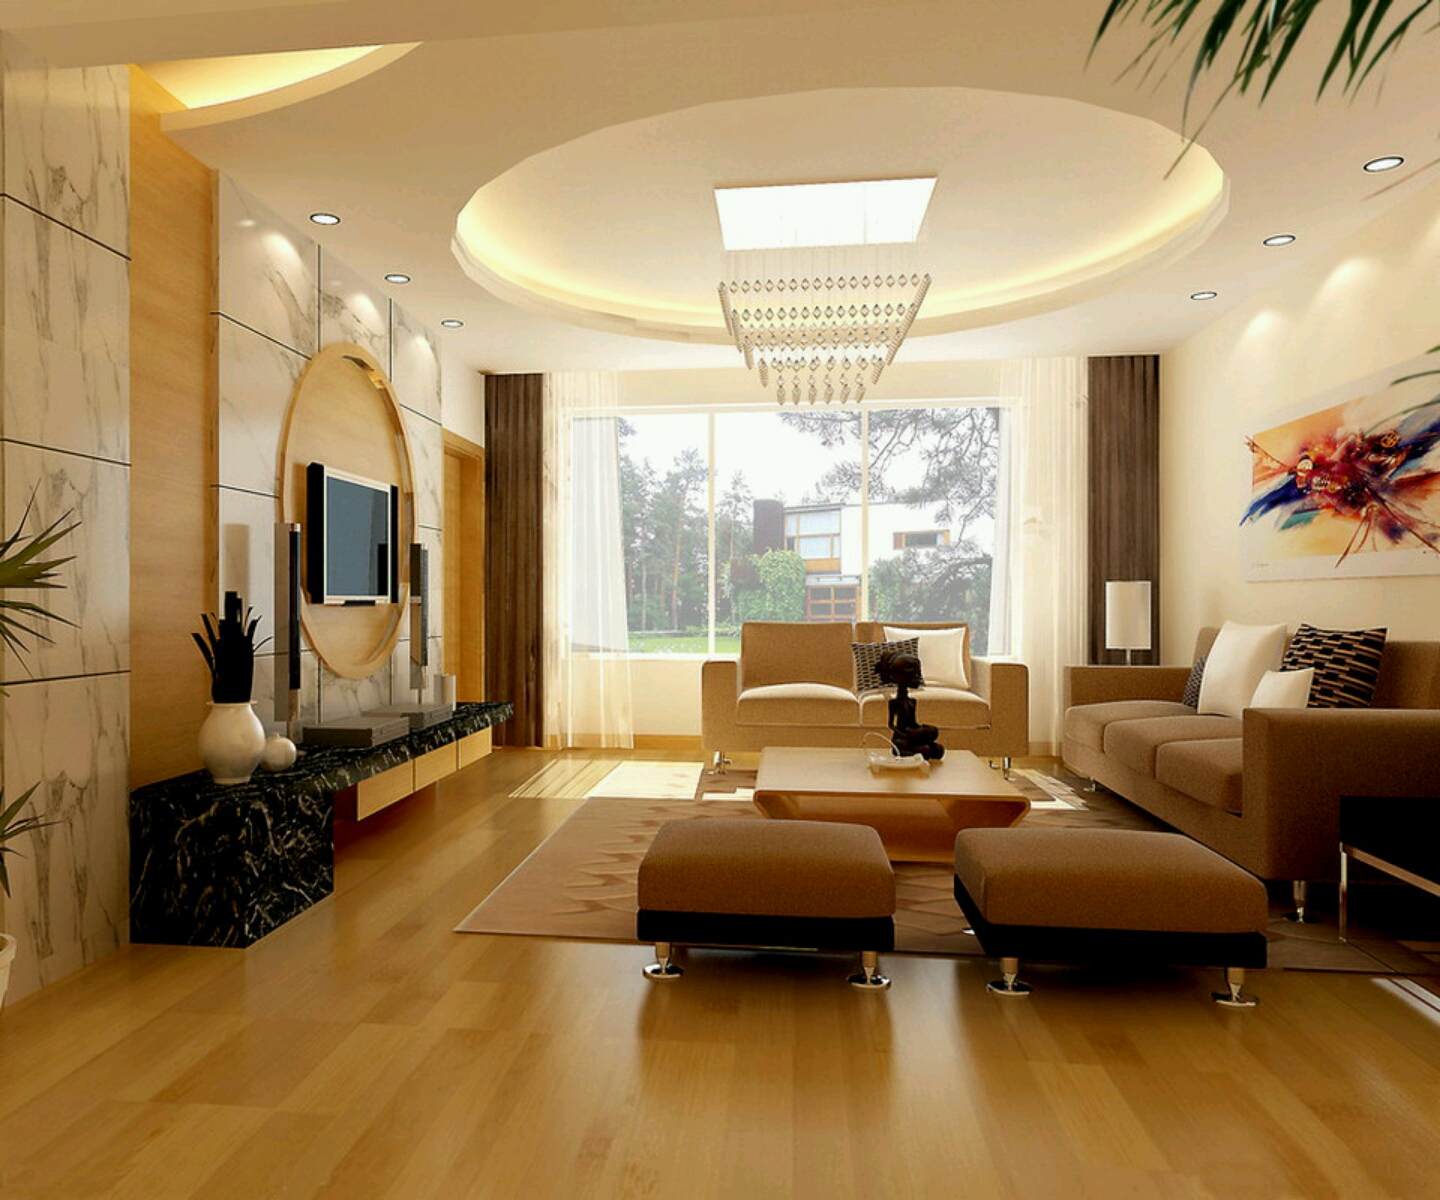 Modern interior decoration living rooms ceiling designs for Living room decor themes